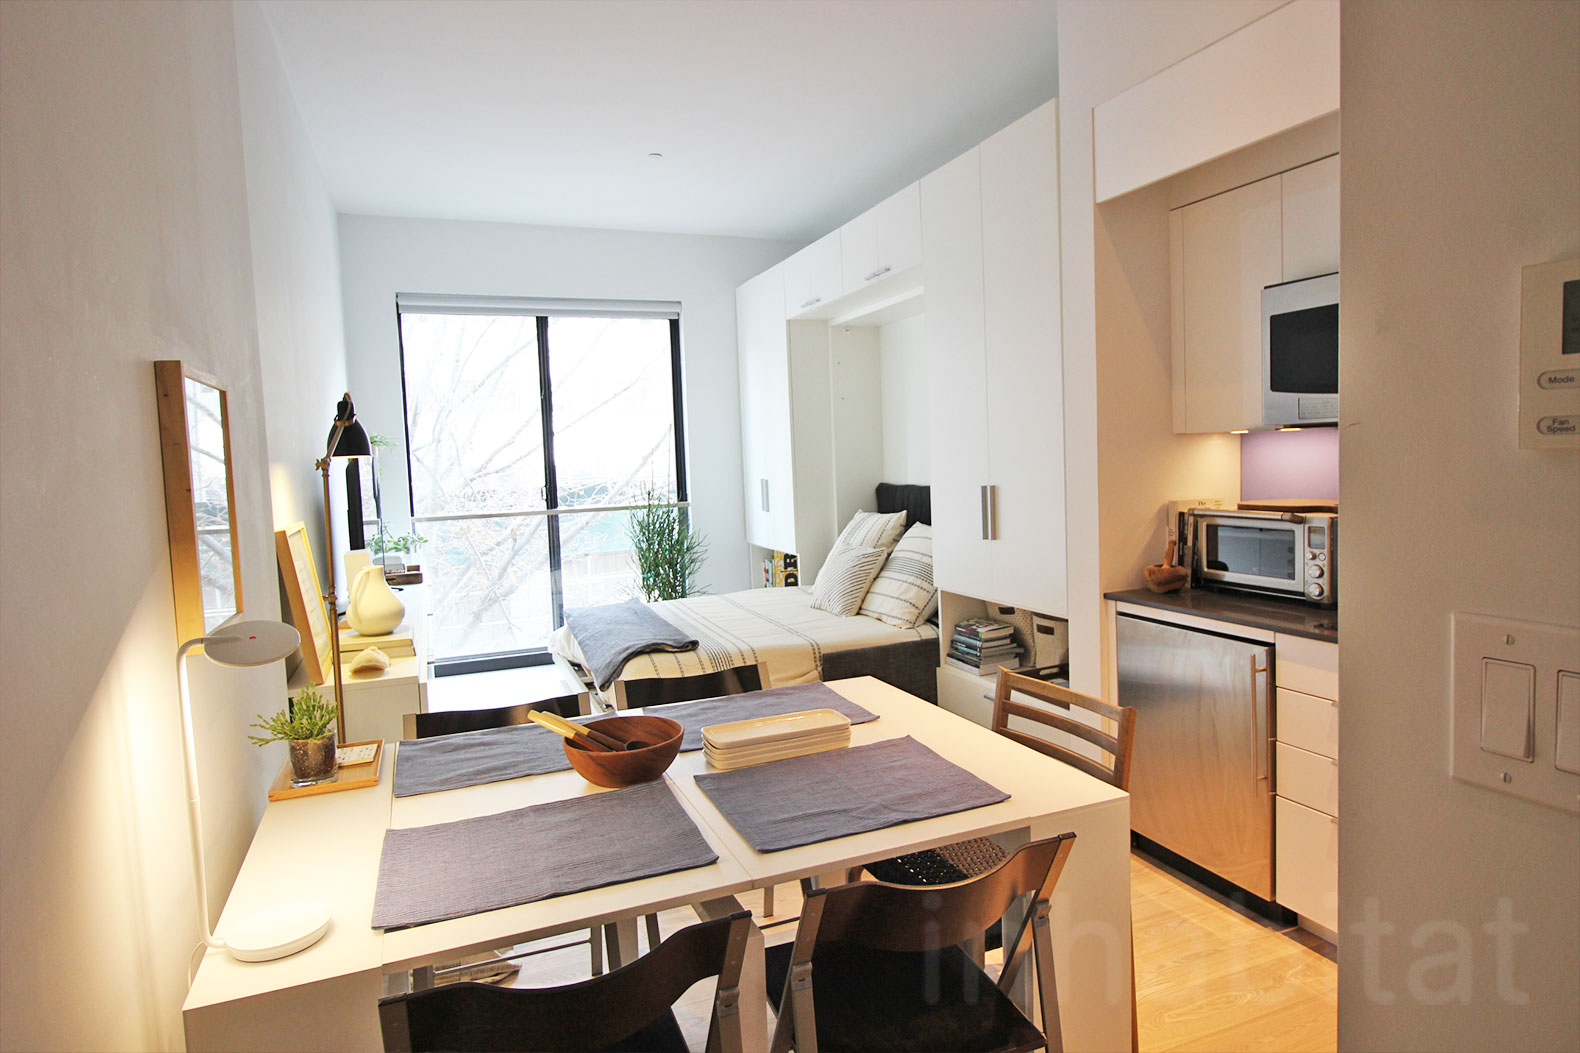 New York City Apartment Floor Plans furthermore House Plans With Guest Wing as well Micro Apartments 15 Inspirational Tiny Spaces as well Floor Plans 4 Bedroom Apartment In Nyc besides Apartments Floor Plans For Small Areas. on smallest nyc apartment floor plans